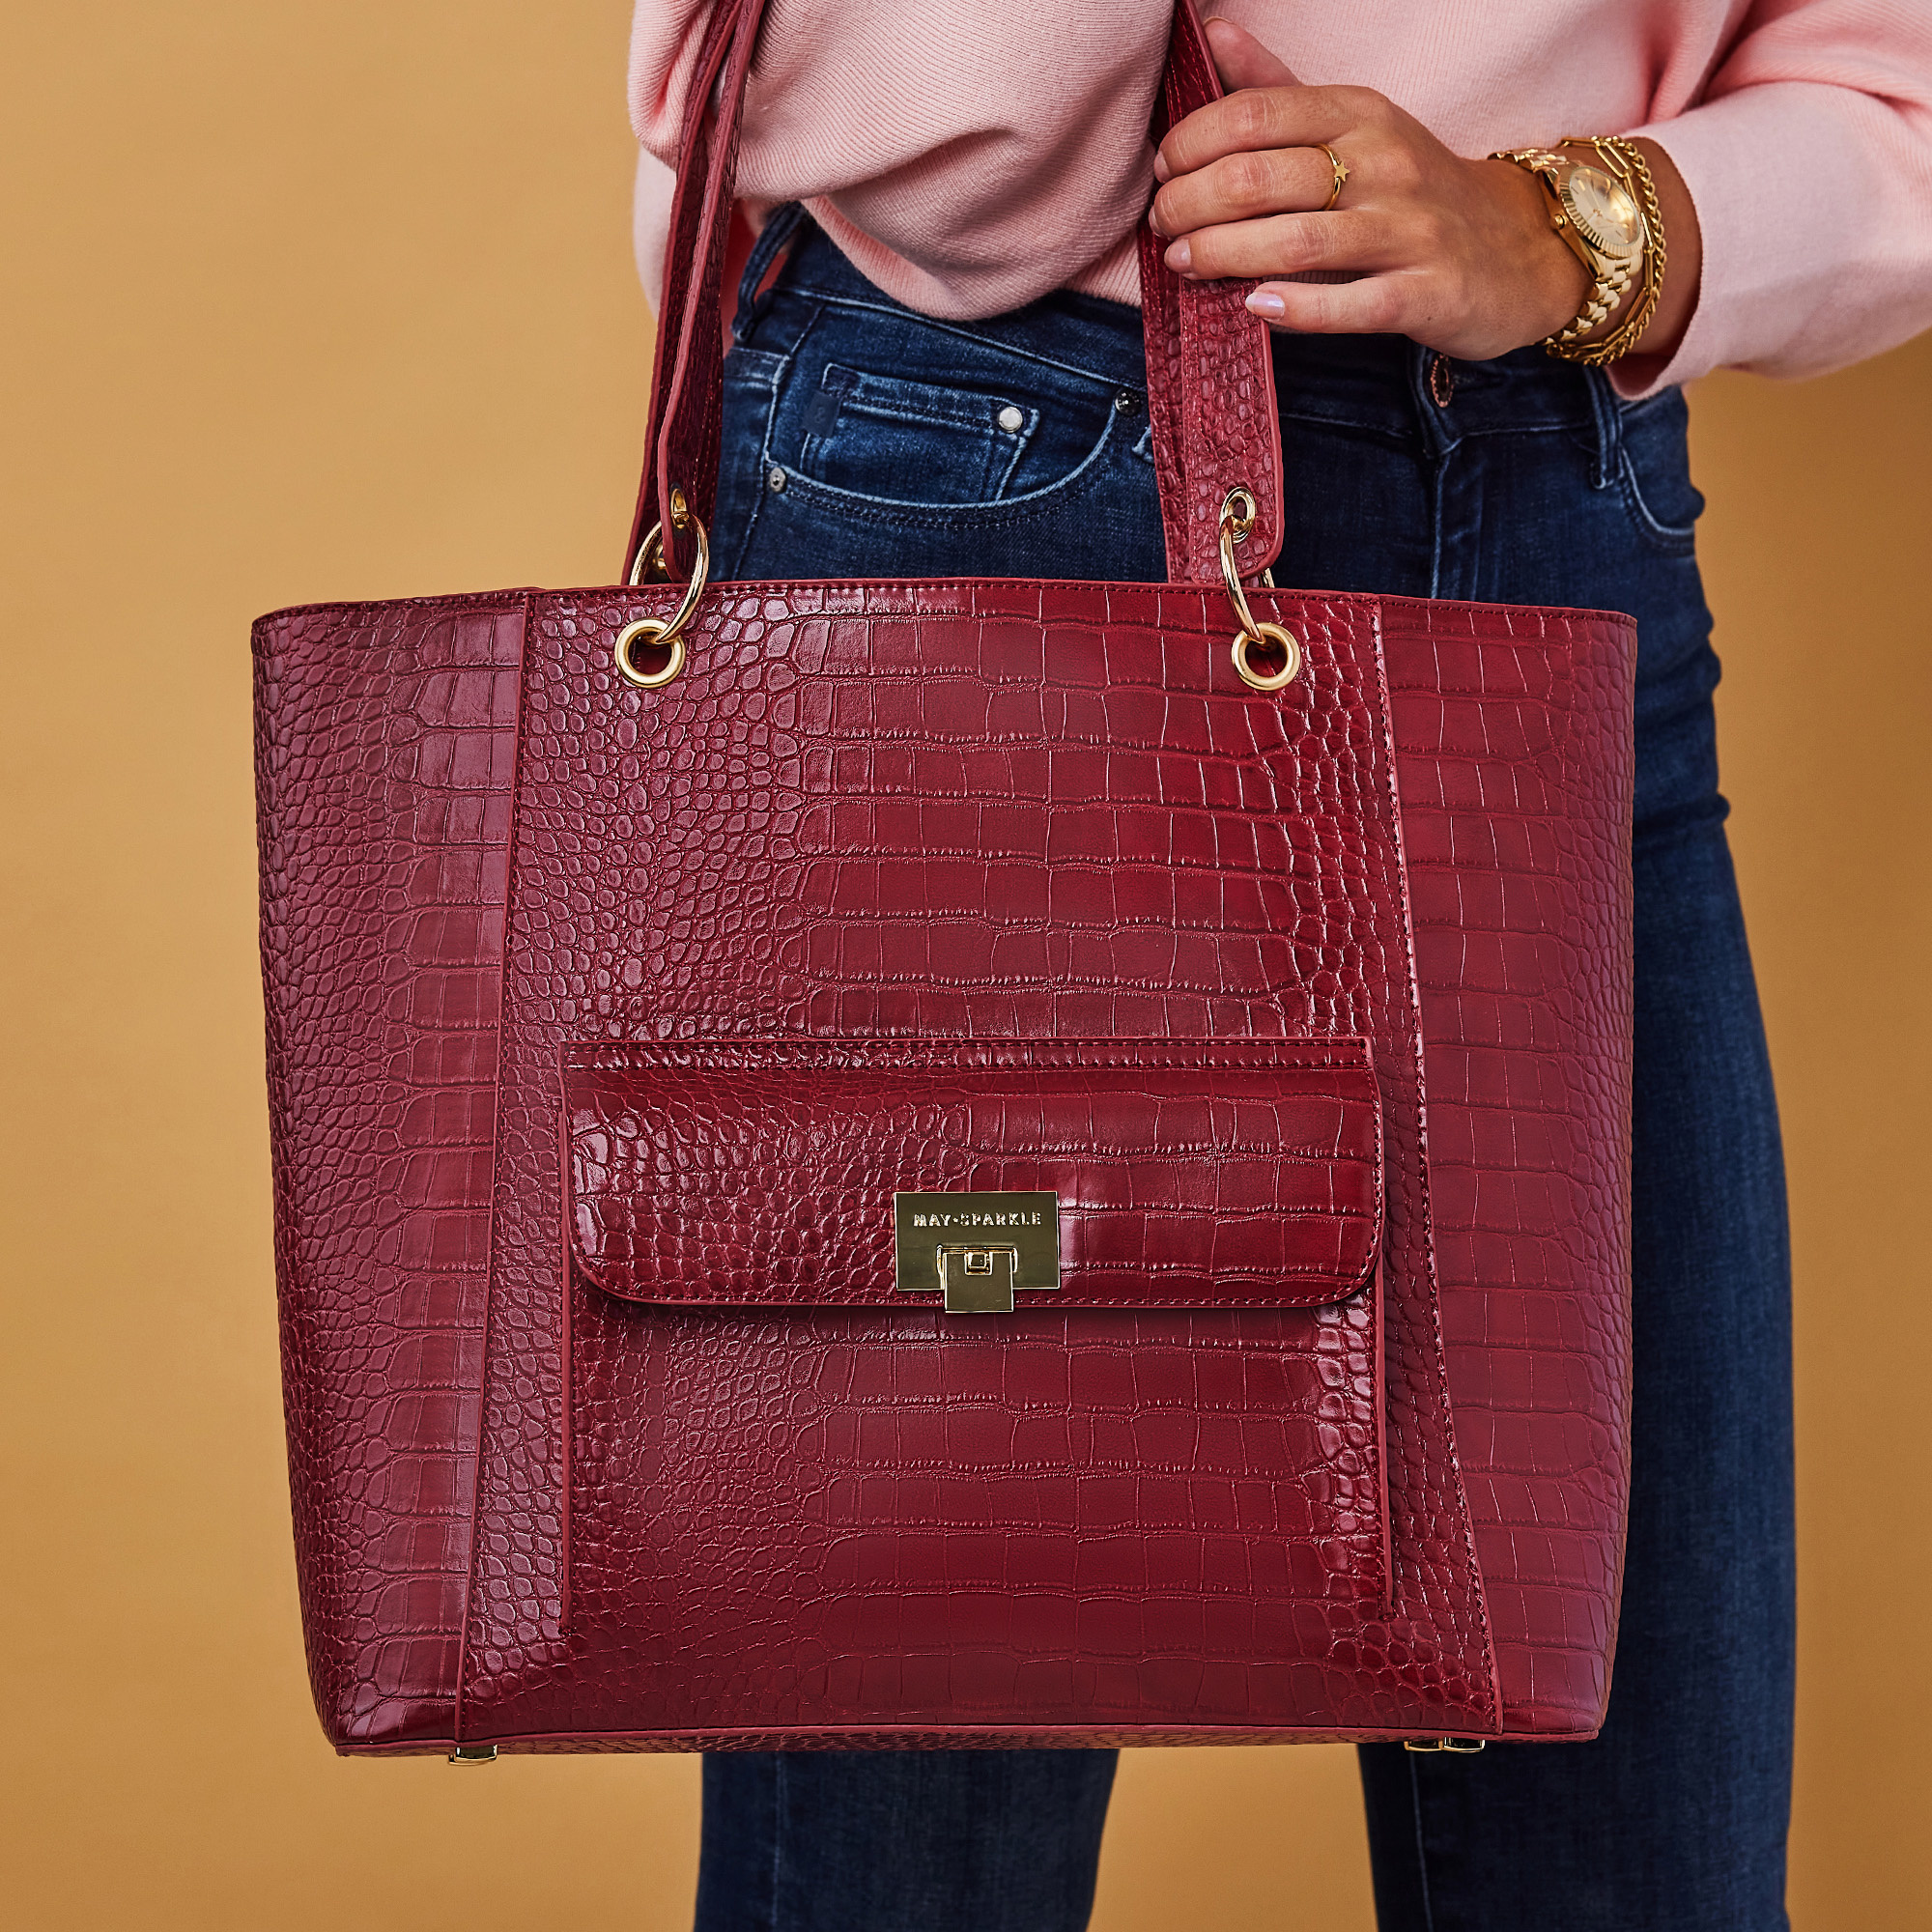 May Sparkle The Daily rode croco shopper